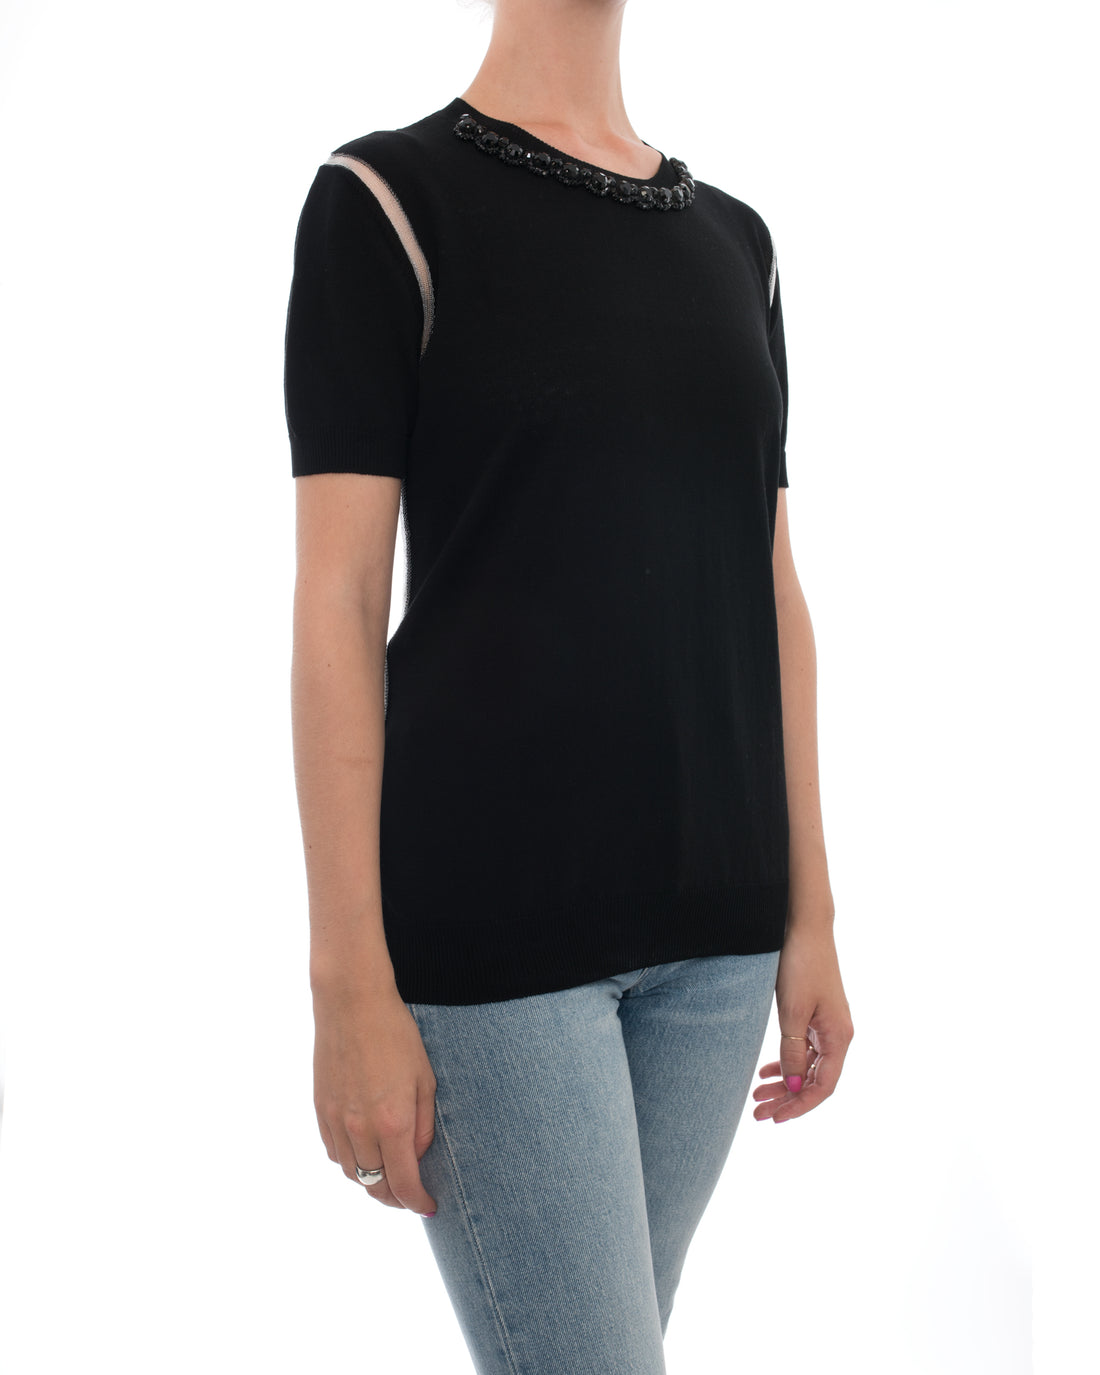 Marni Black Knit Short Sleeve Top with Jewelled Neckline - 6